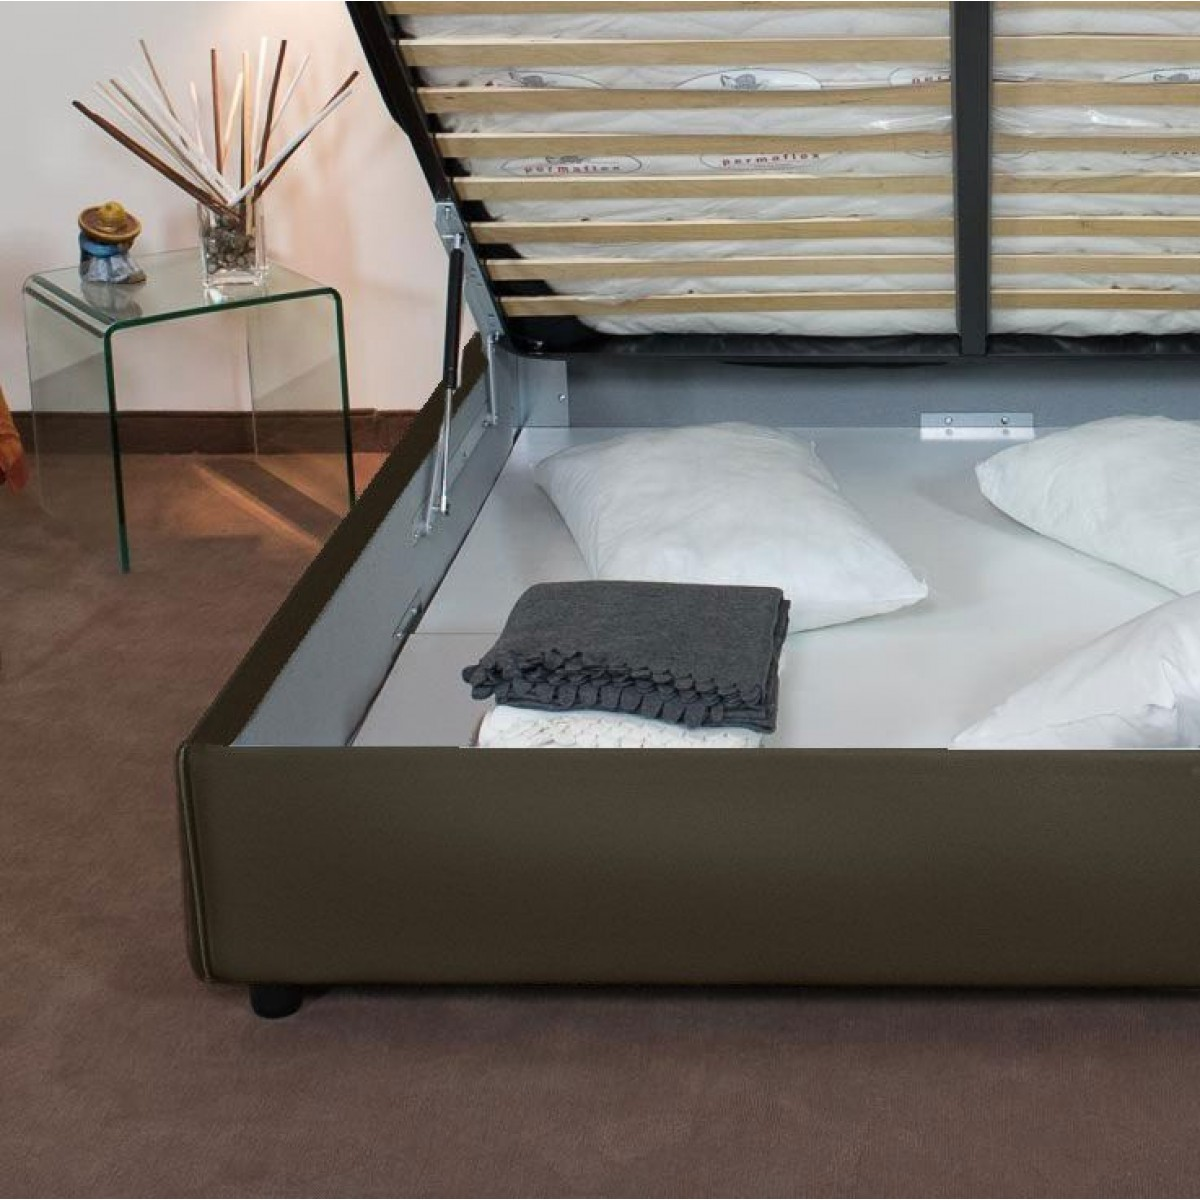 Letto Sommier.Tosca Letto Sommier Una Piazza E 1 2 Design Moderno In Similpelle